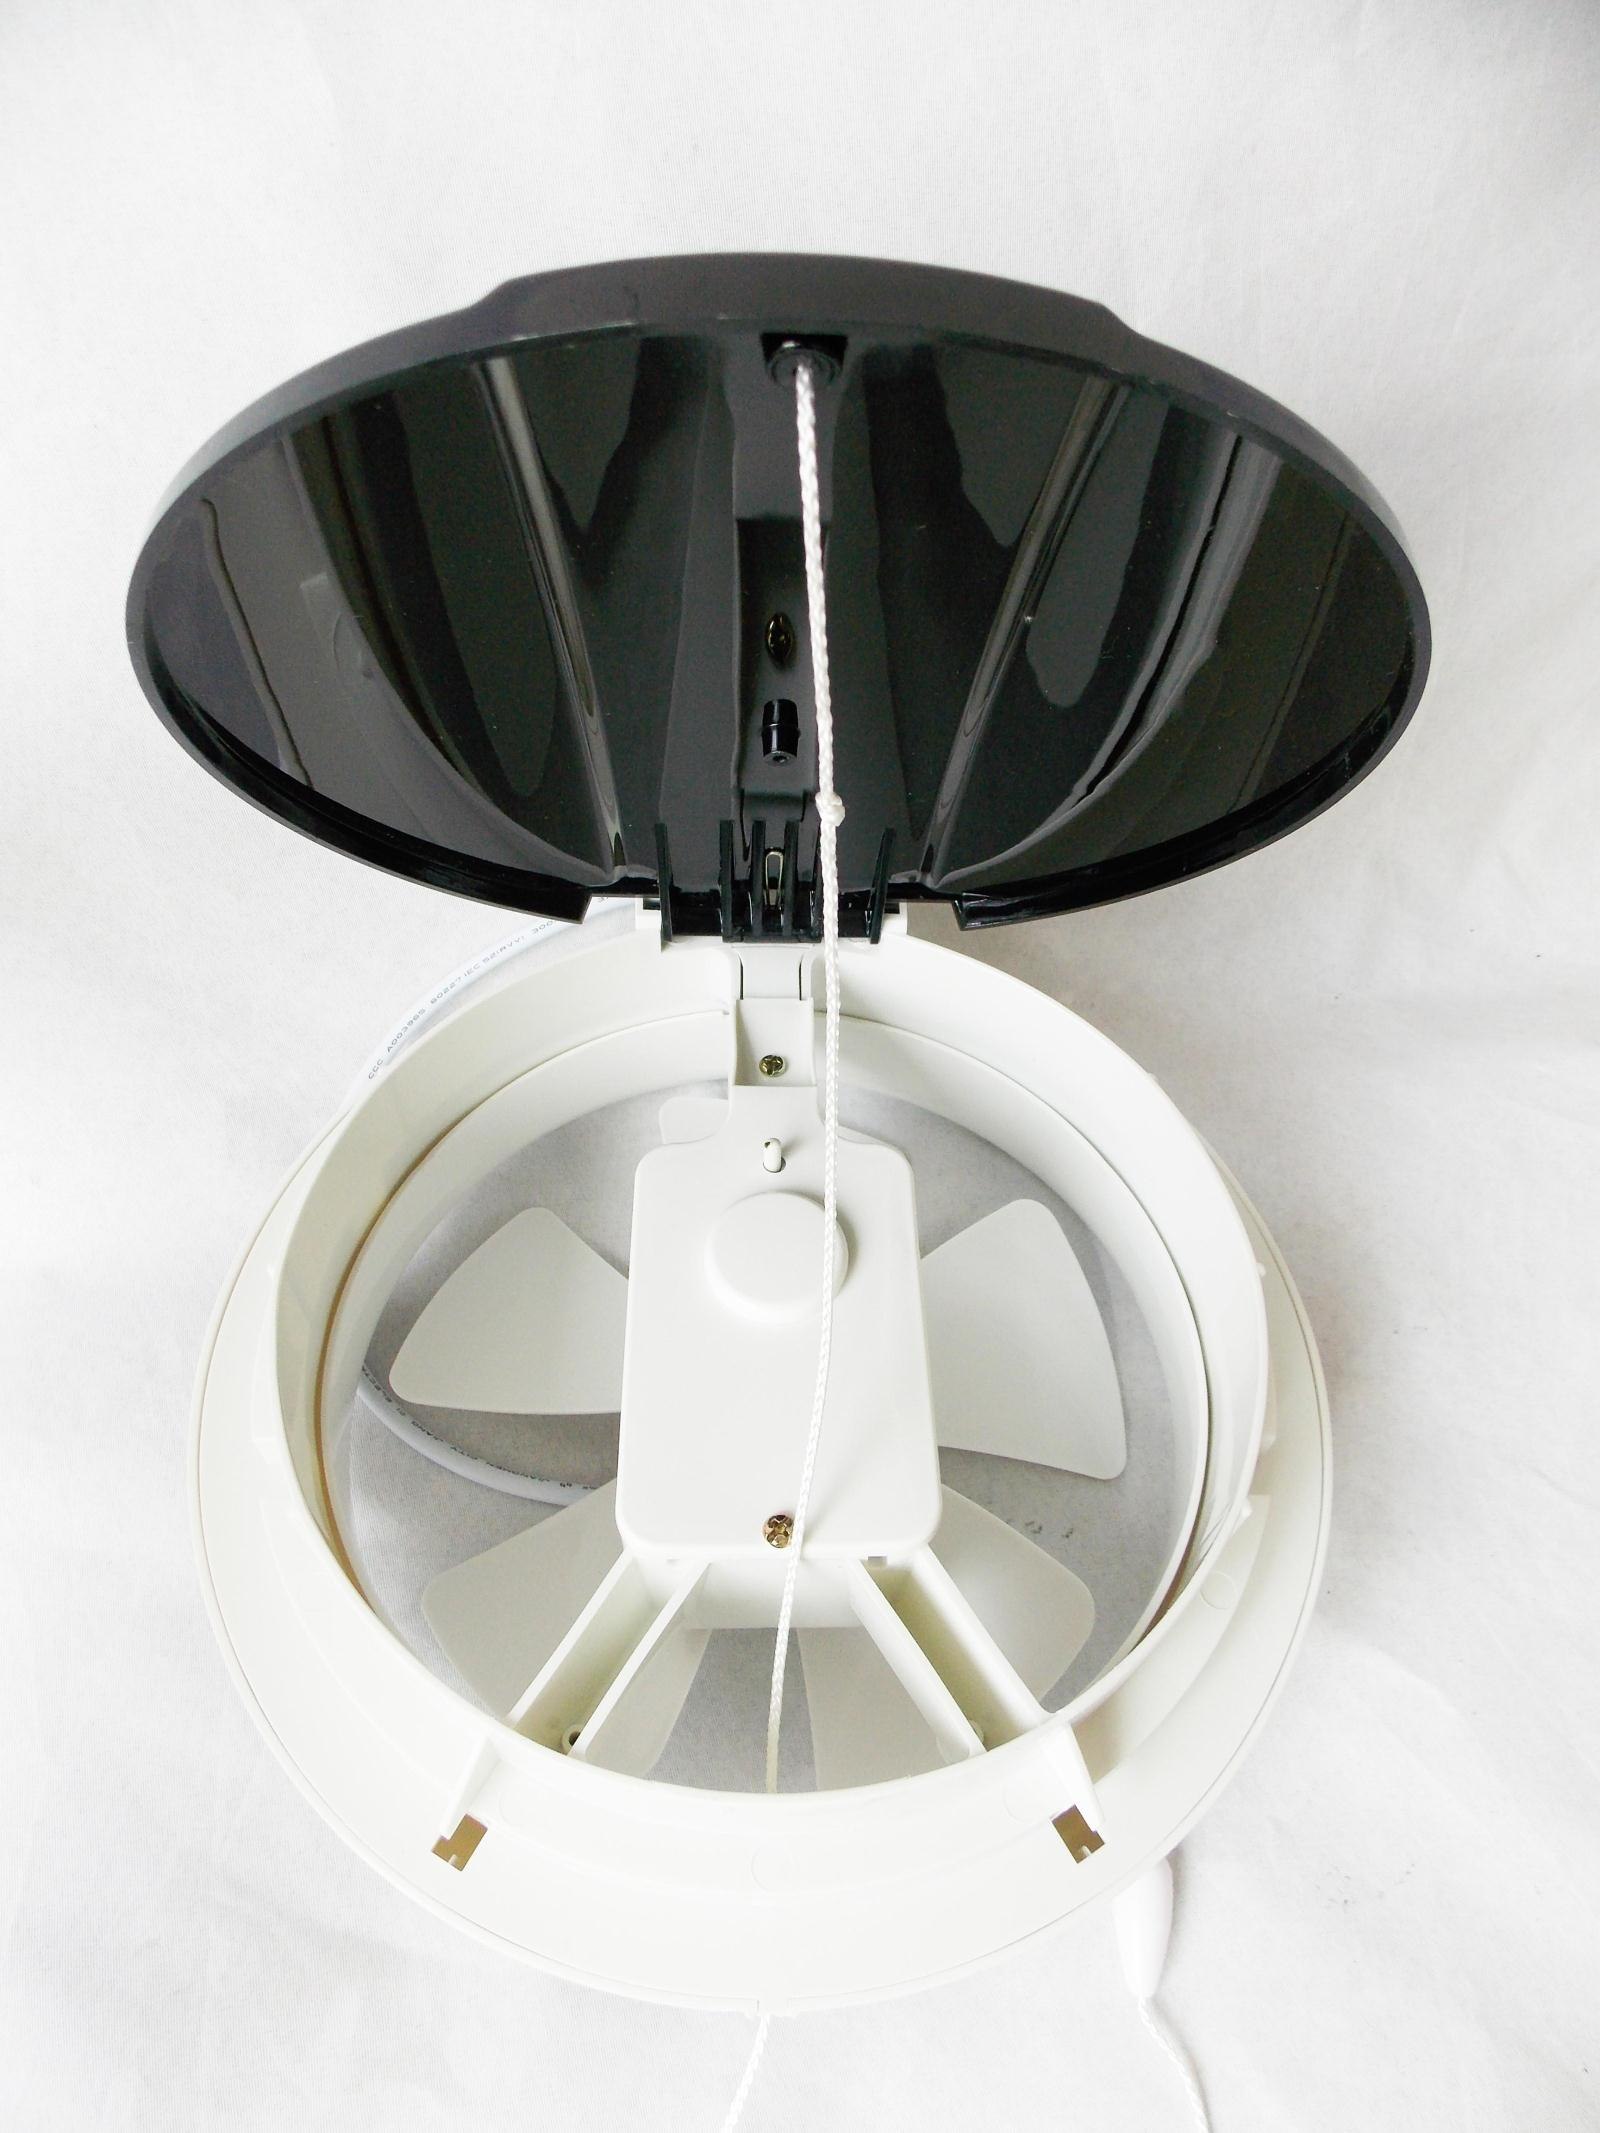 Round Glass Window Exhaust Fan Exhaust Fan Bathroom Ventilation Fans Blower Apc1521 In Hvac